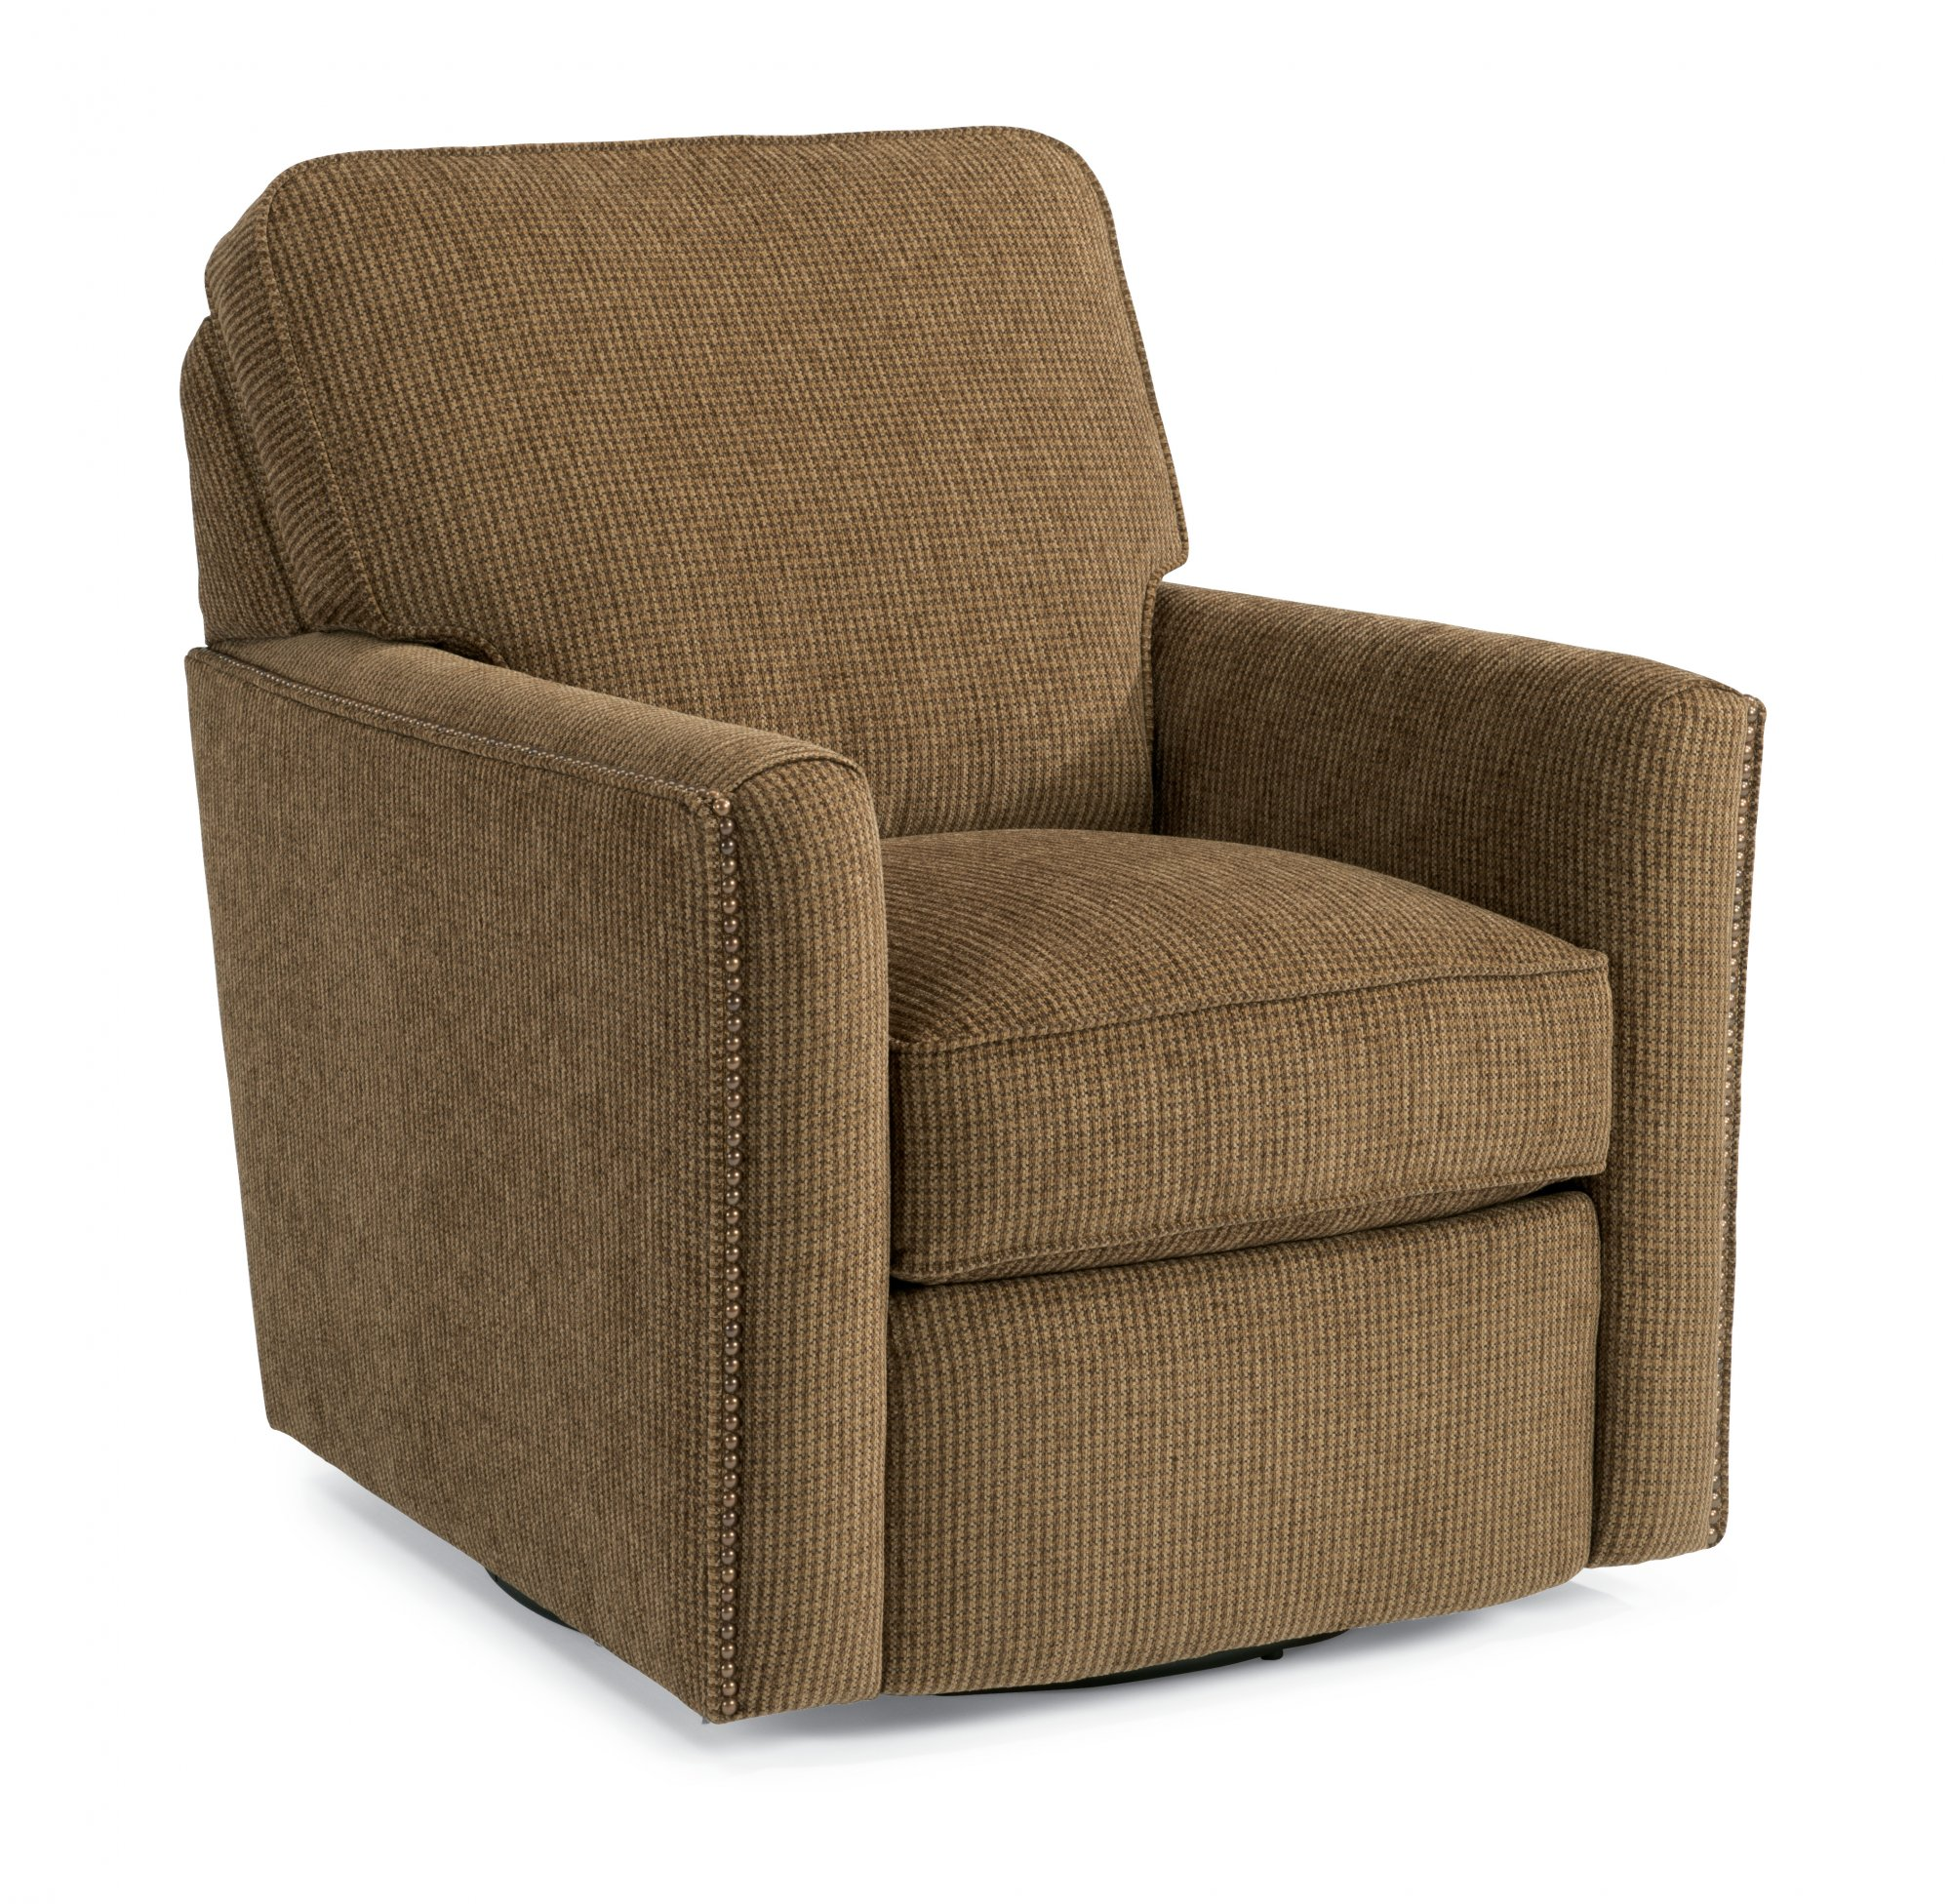 Flexsteel Chamberlain  Fabric Swivel Chair